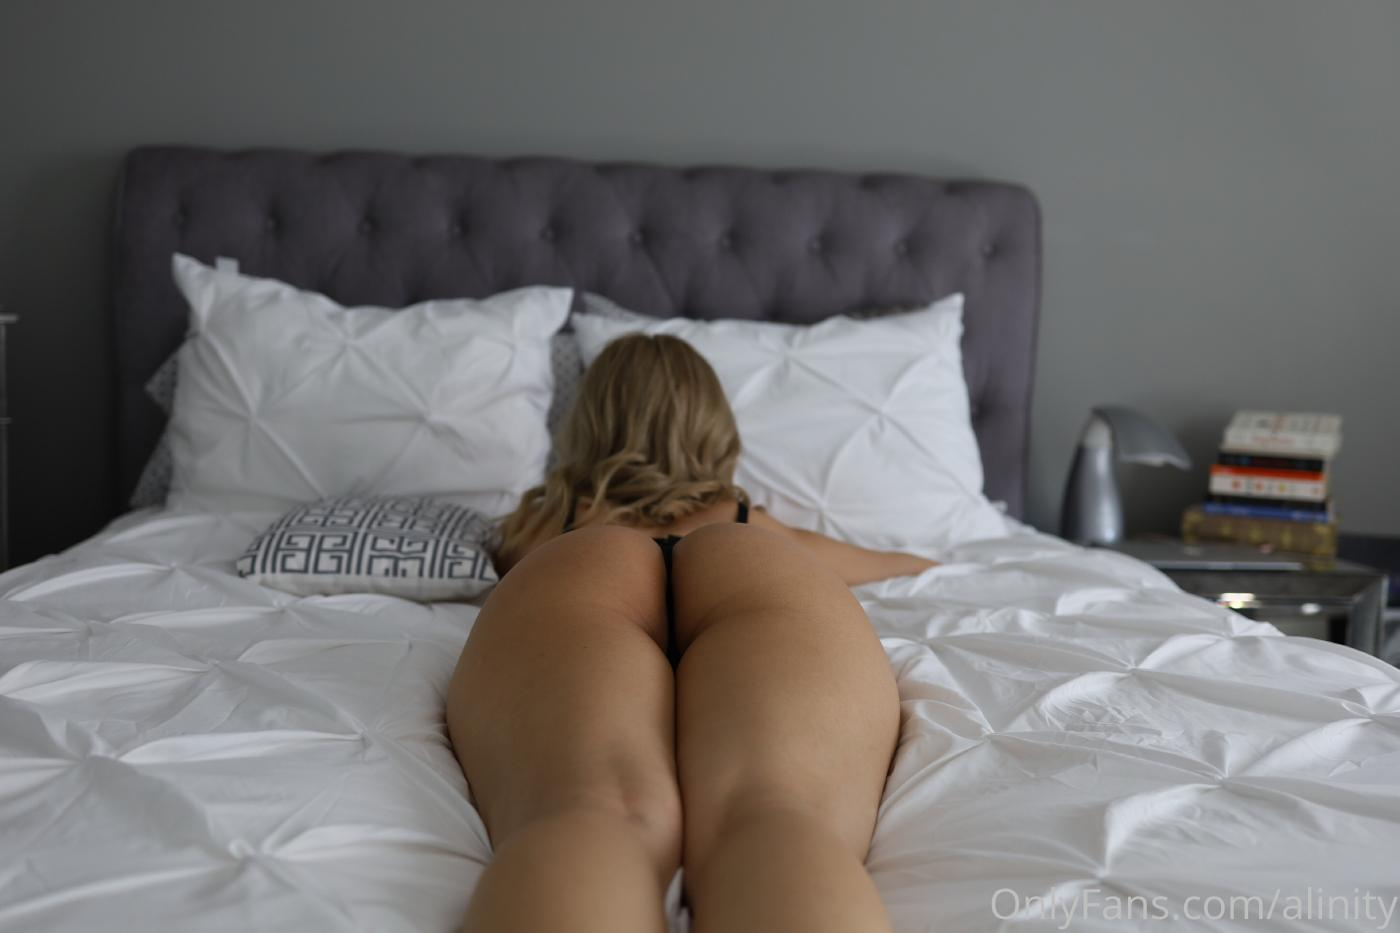 Alinity Nude Humping Onlyfans Video Leaked Webdxi